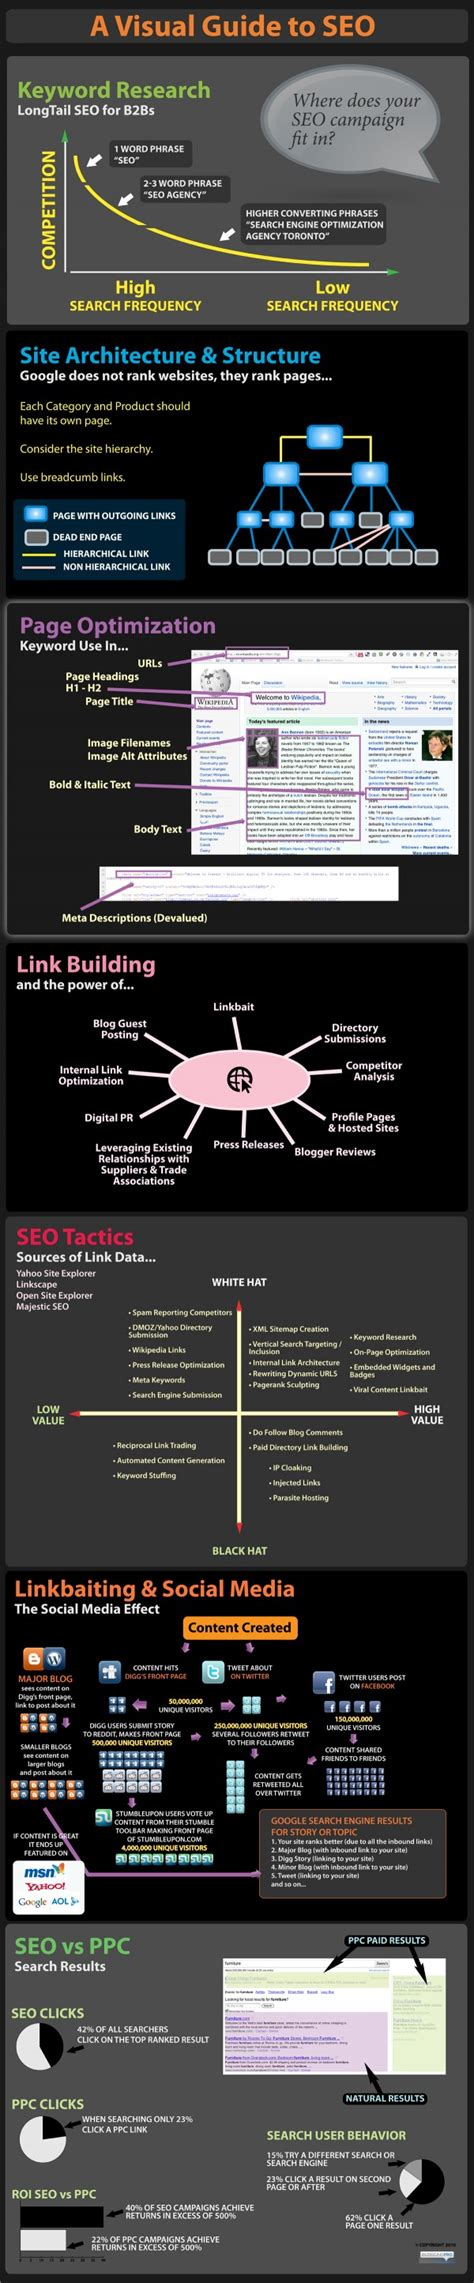 Seo Guide by Visual Guide To Seo